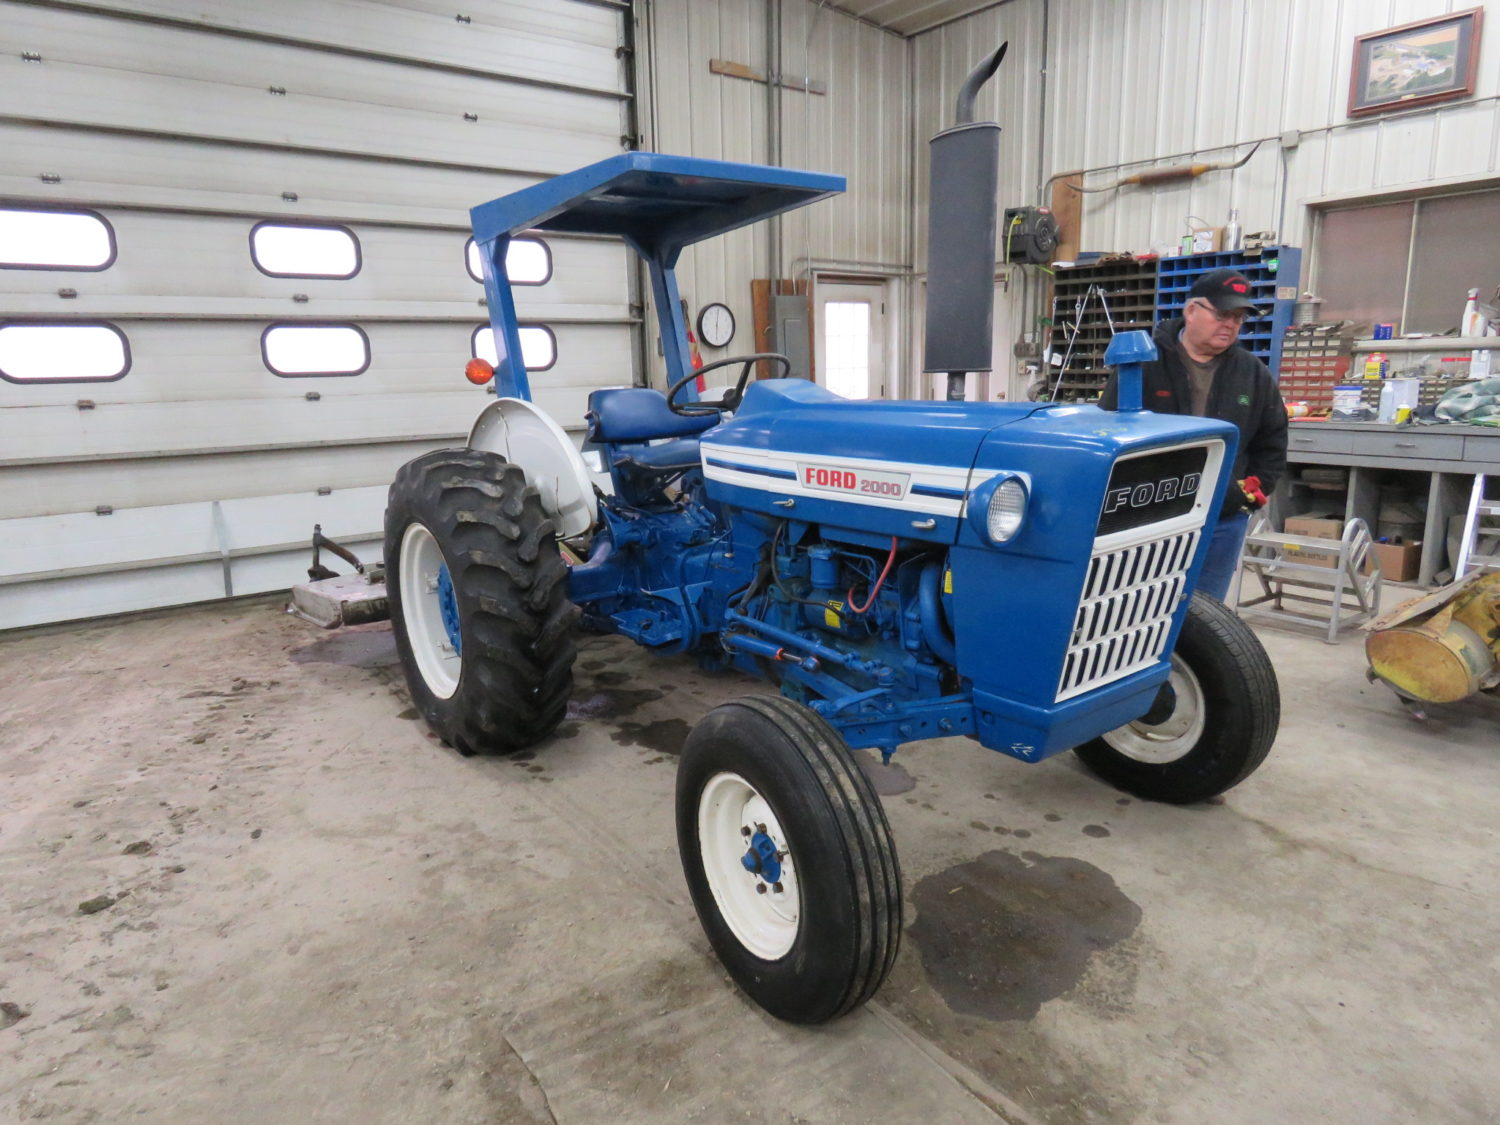 Day 1- Antique Tractors, Farm Equipment, Toys, & More- The James Graham Collection - image 12